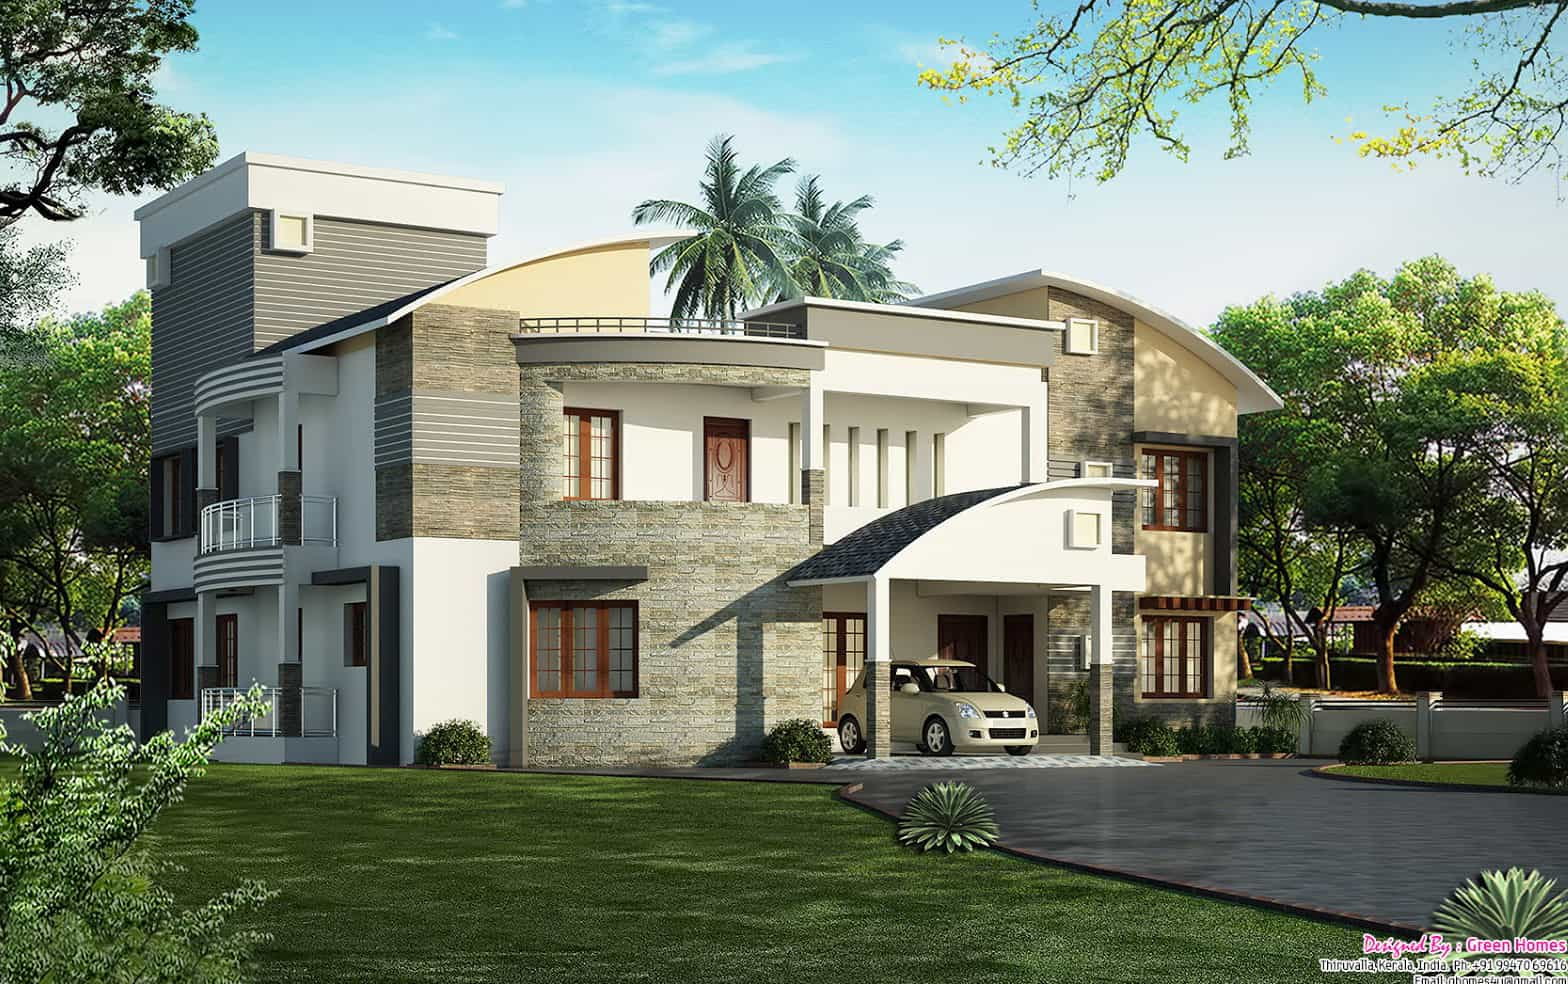 Unique house designs keralahouseplanner for Creative house designs